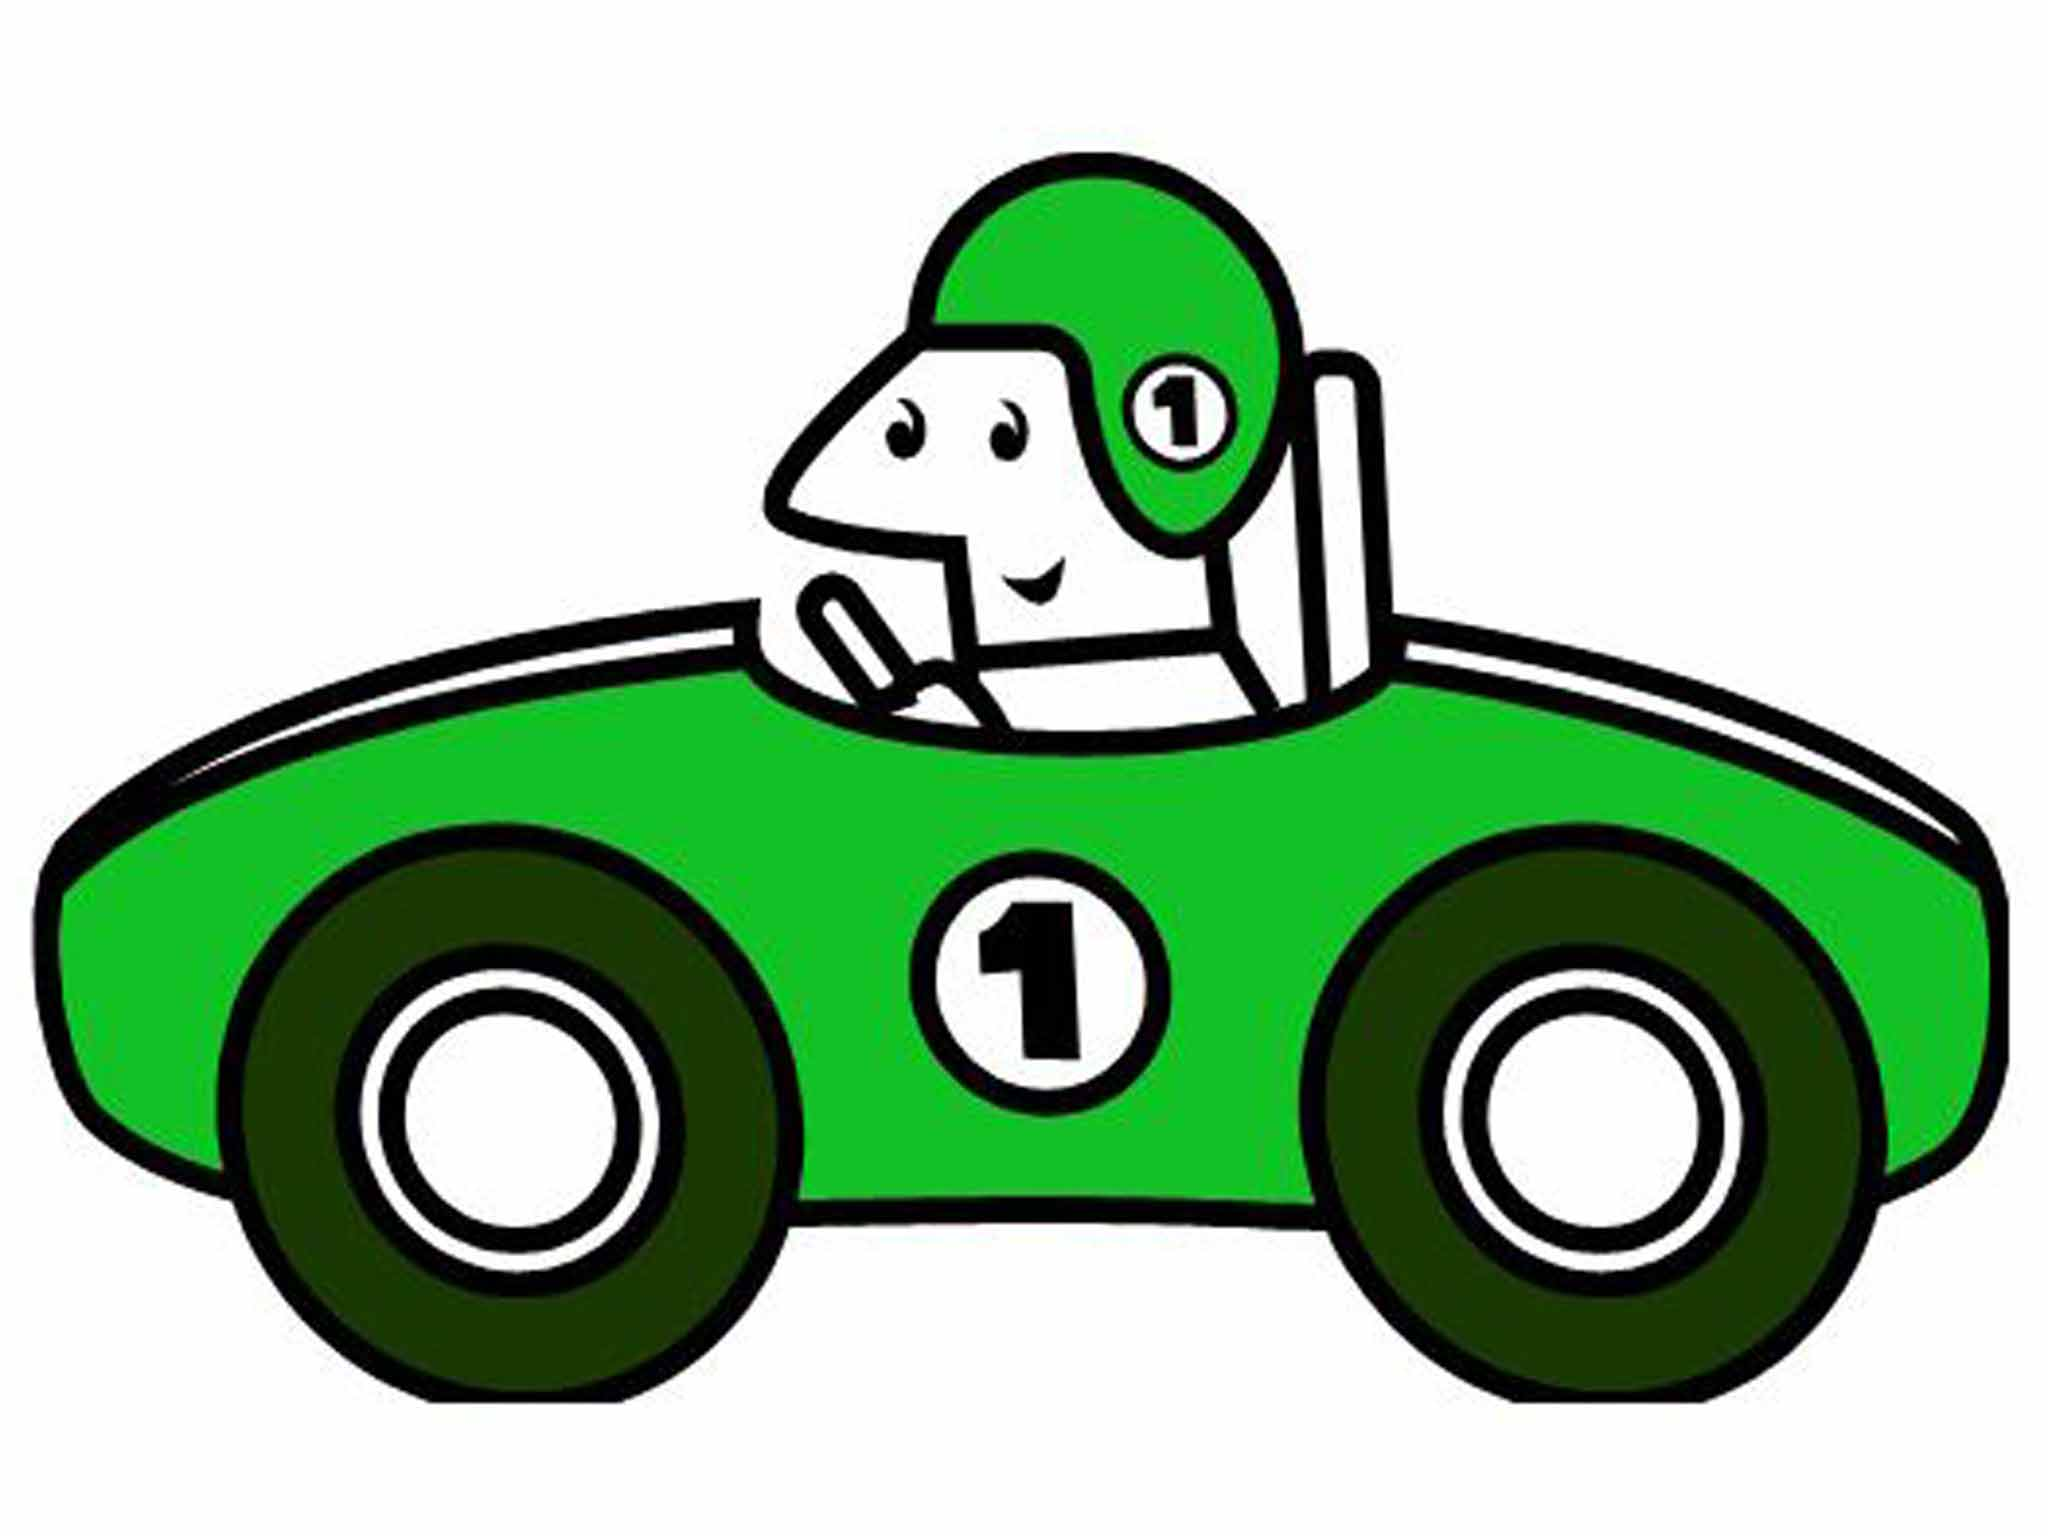 2048x1536 Race Car Clipart